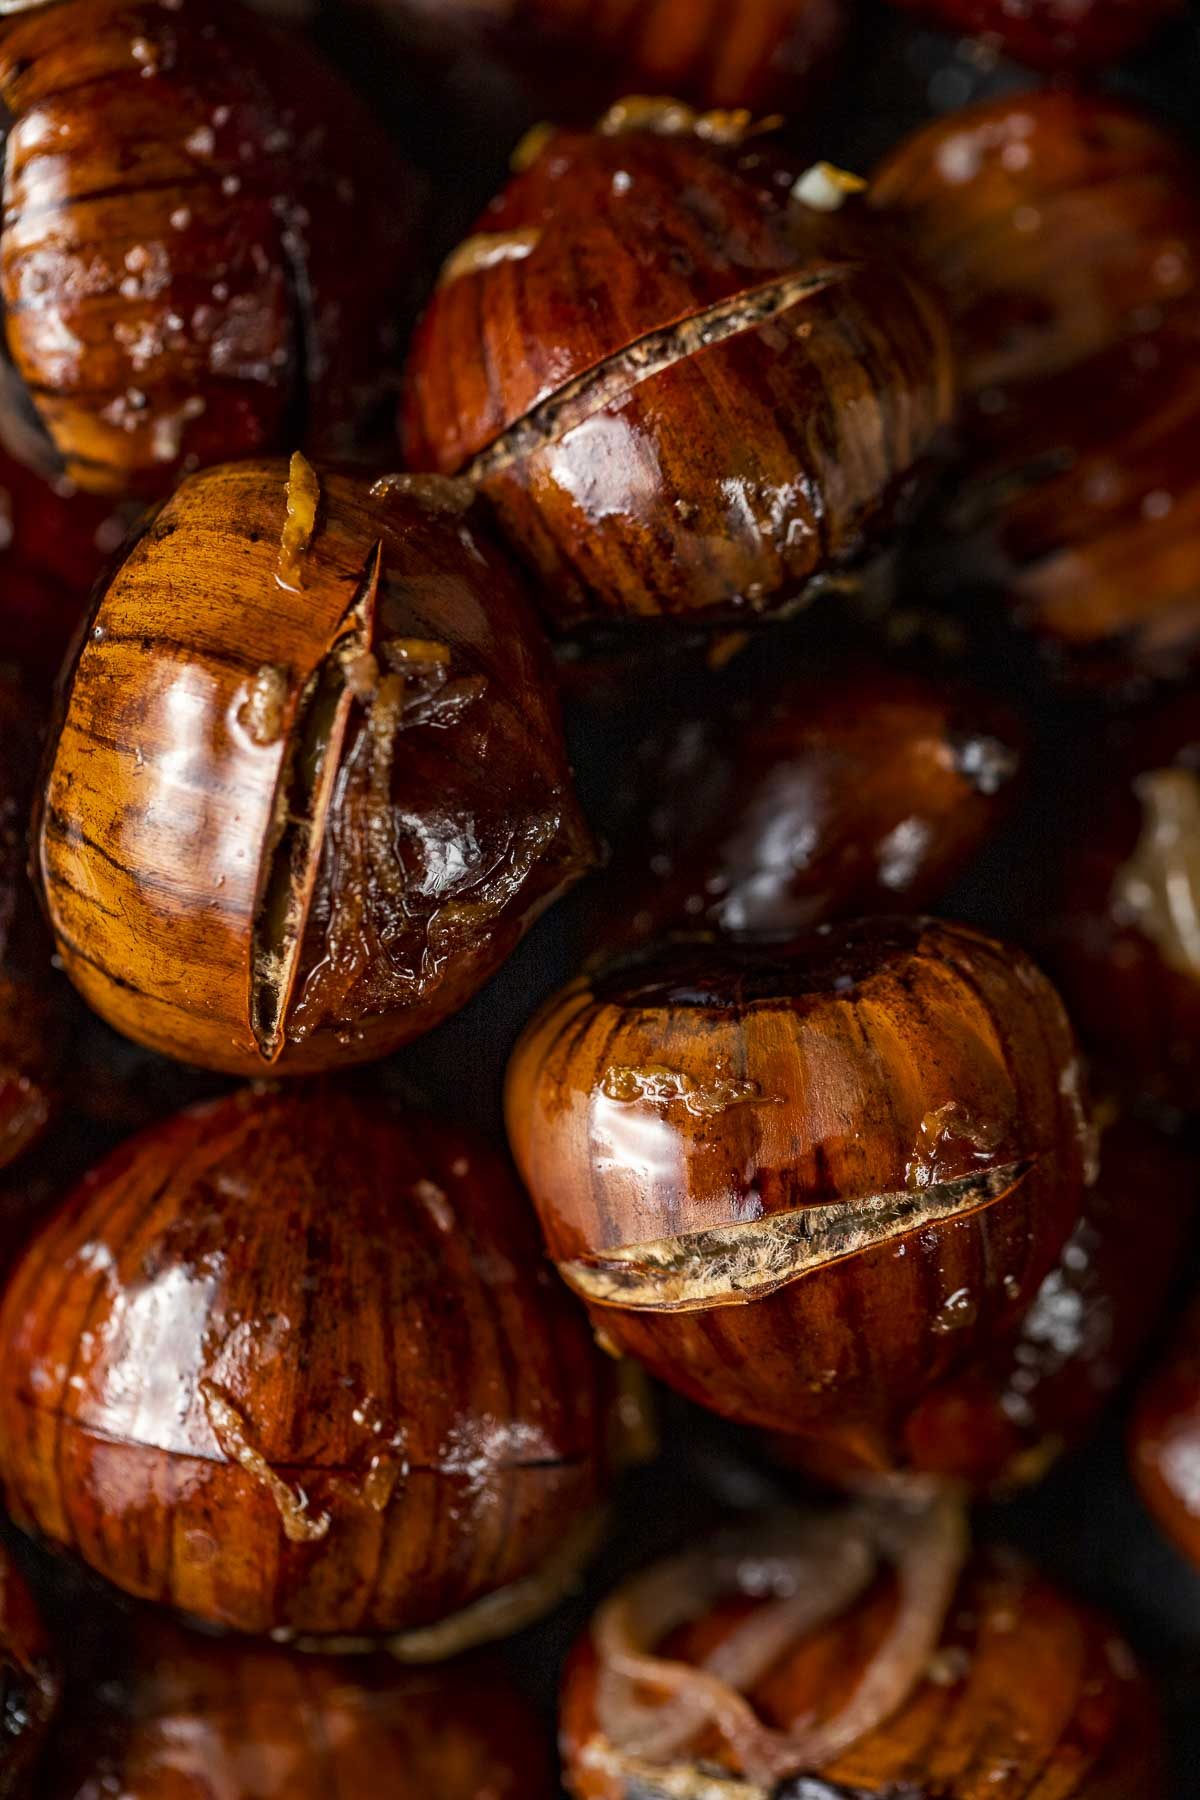 close up photo of several roasted chestnuts